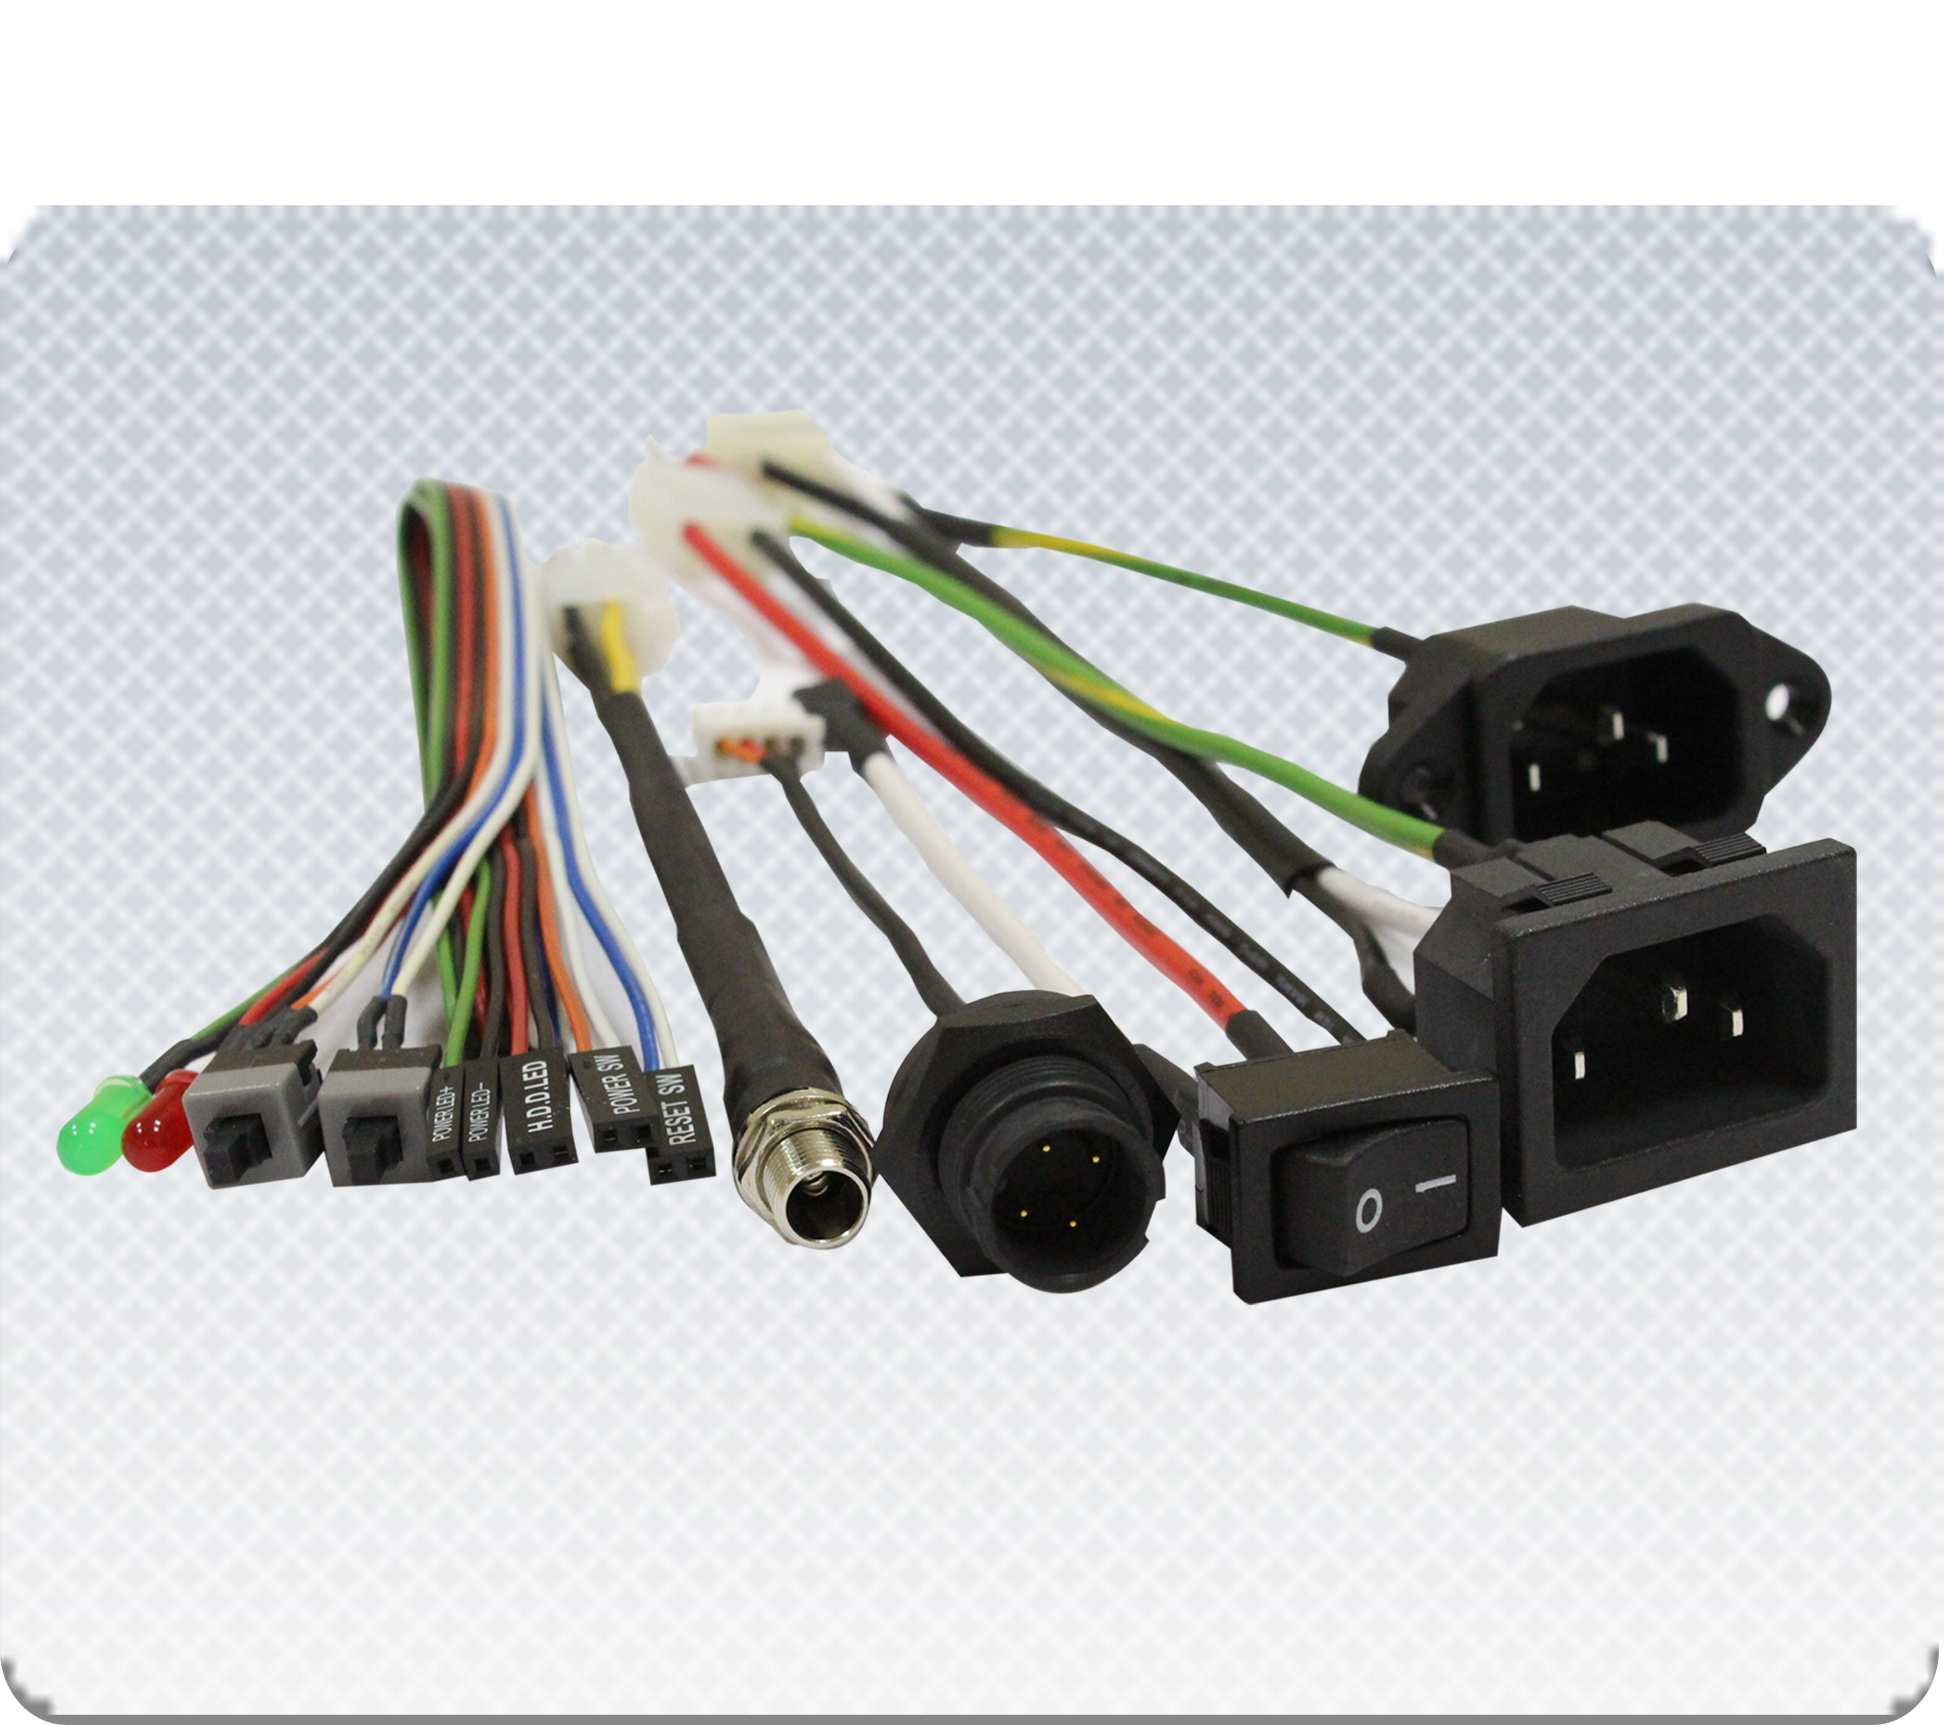 wire harness supplier, wire harness manufacturer, wire harness oem ...